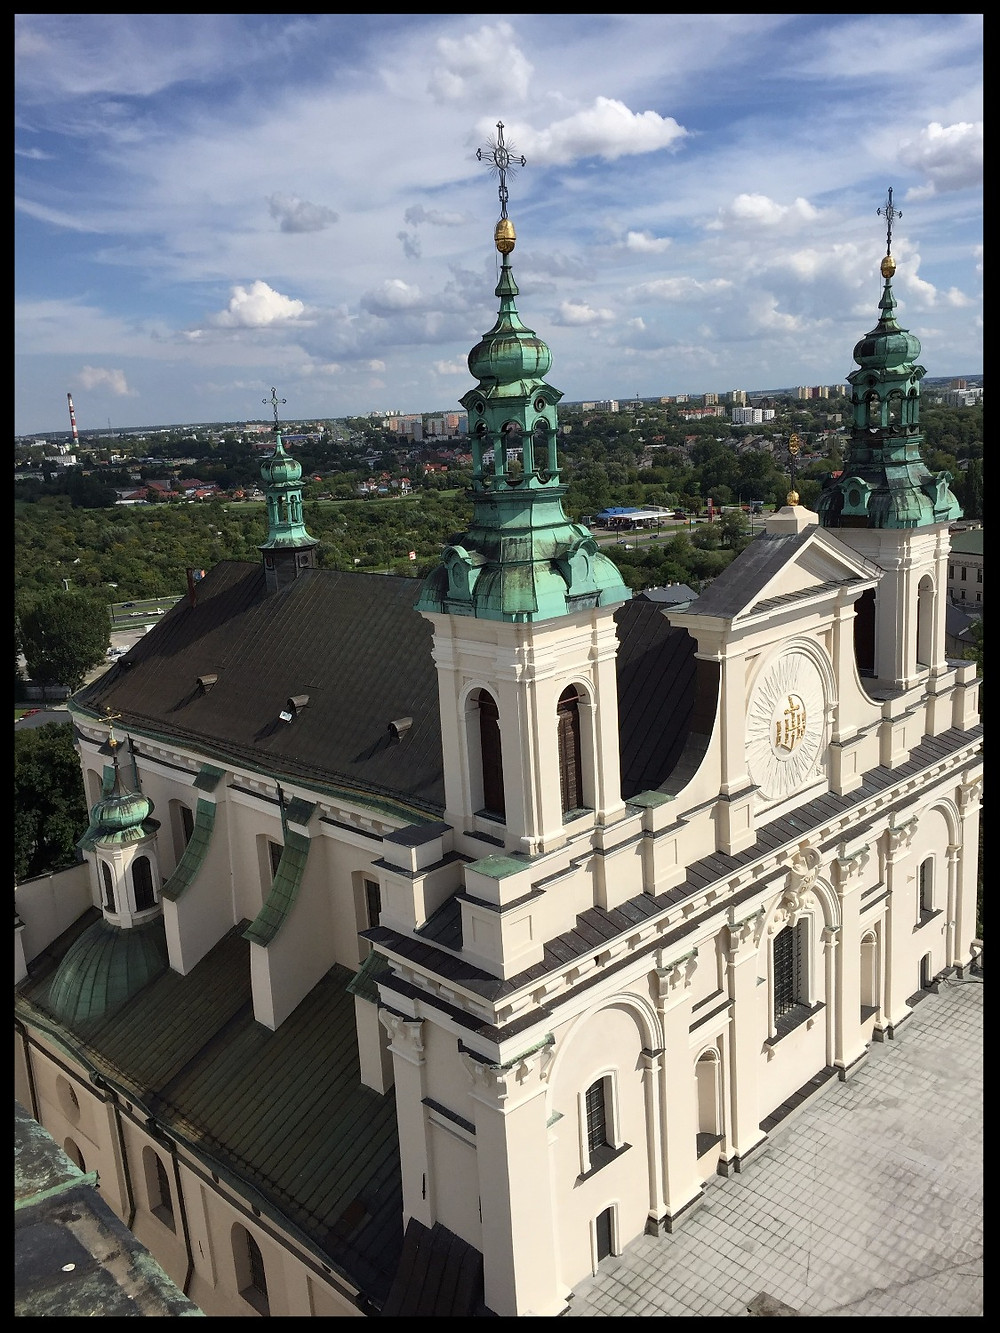 Metropolitan Cathedral of St. John the Baptist and John the Evangelist, Lublin, Poland